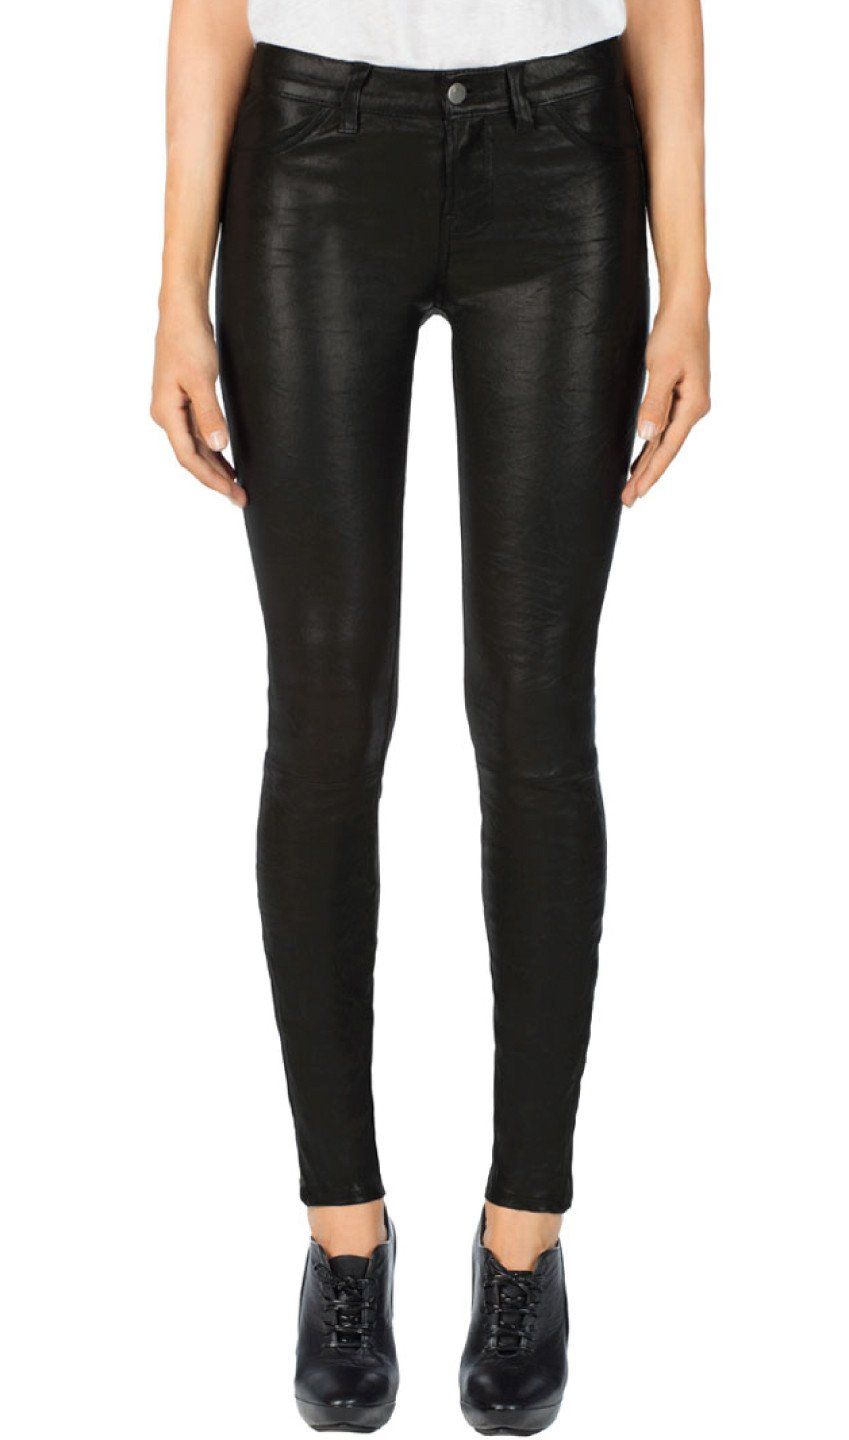 Edwards Imports Ltd Womens Pants NOIR / 24 J Brand | Super Skinny Leather Pant